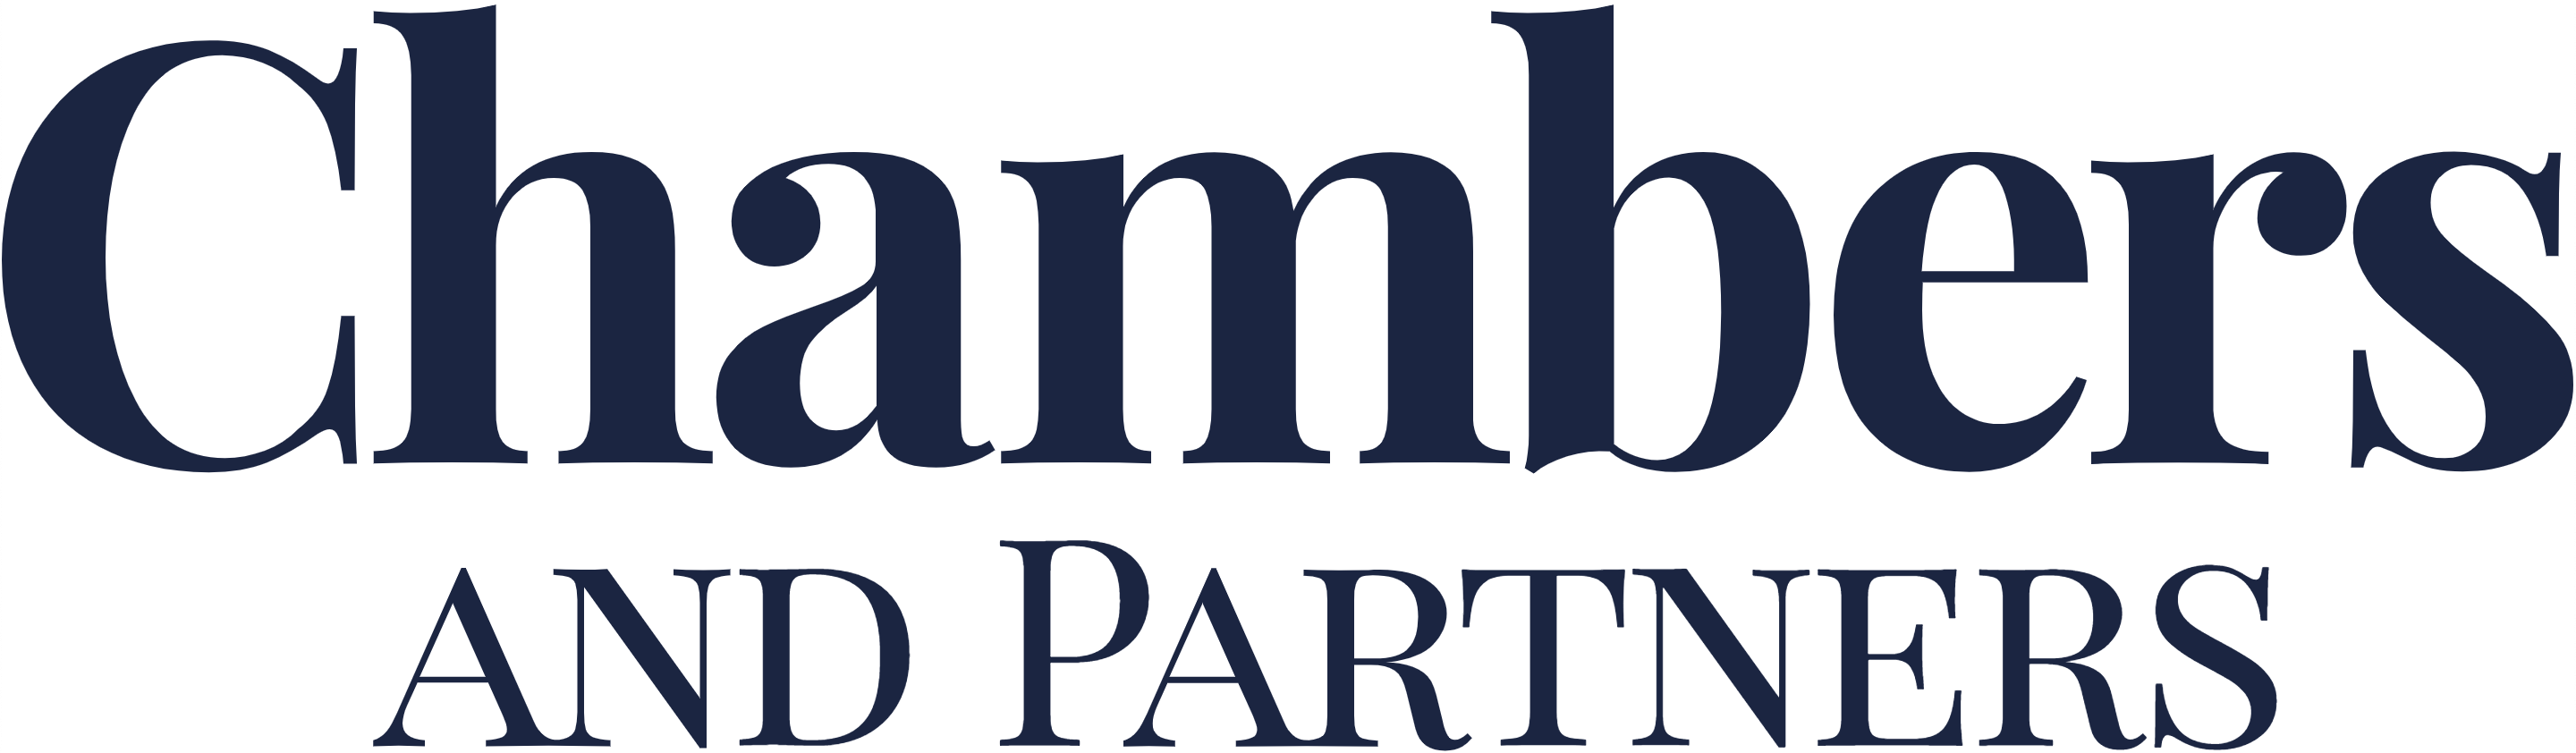 Chambers and Partners